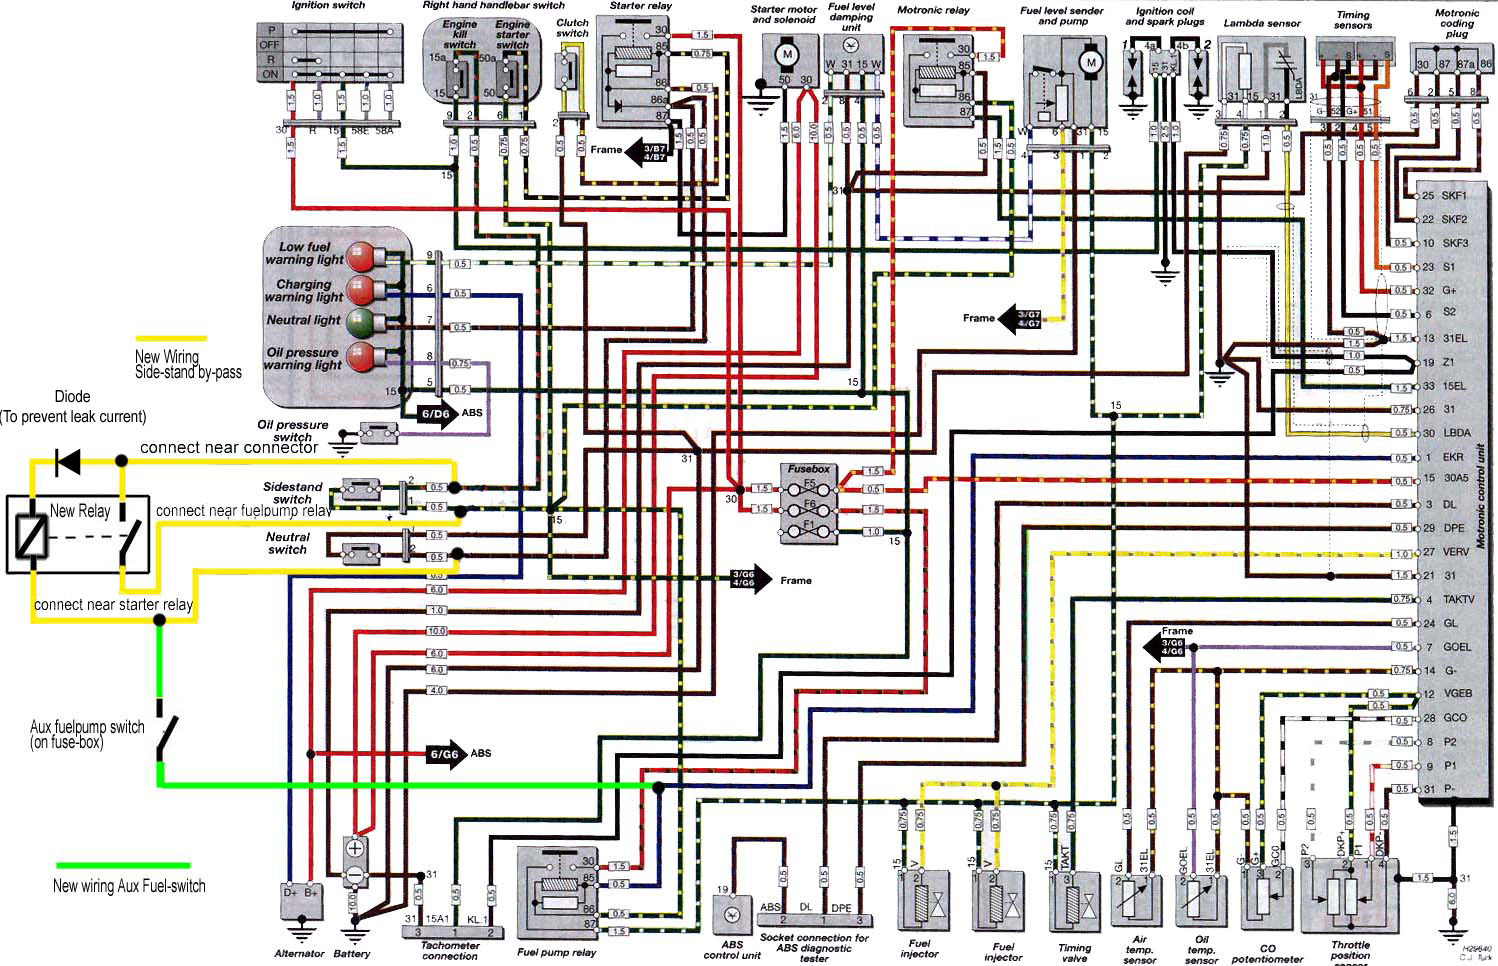 Bmw K1300s Wiring Diagram | wire-classroo All Wiring Diagram -  wire-classroo.apafss.eu | Bmw K 1100 Wiring Diagram |  | apafss.eu